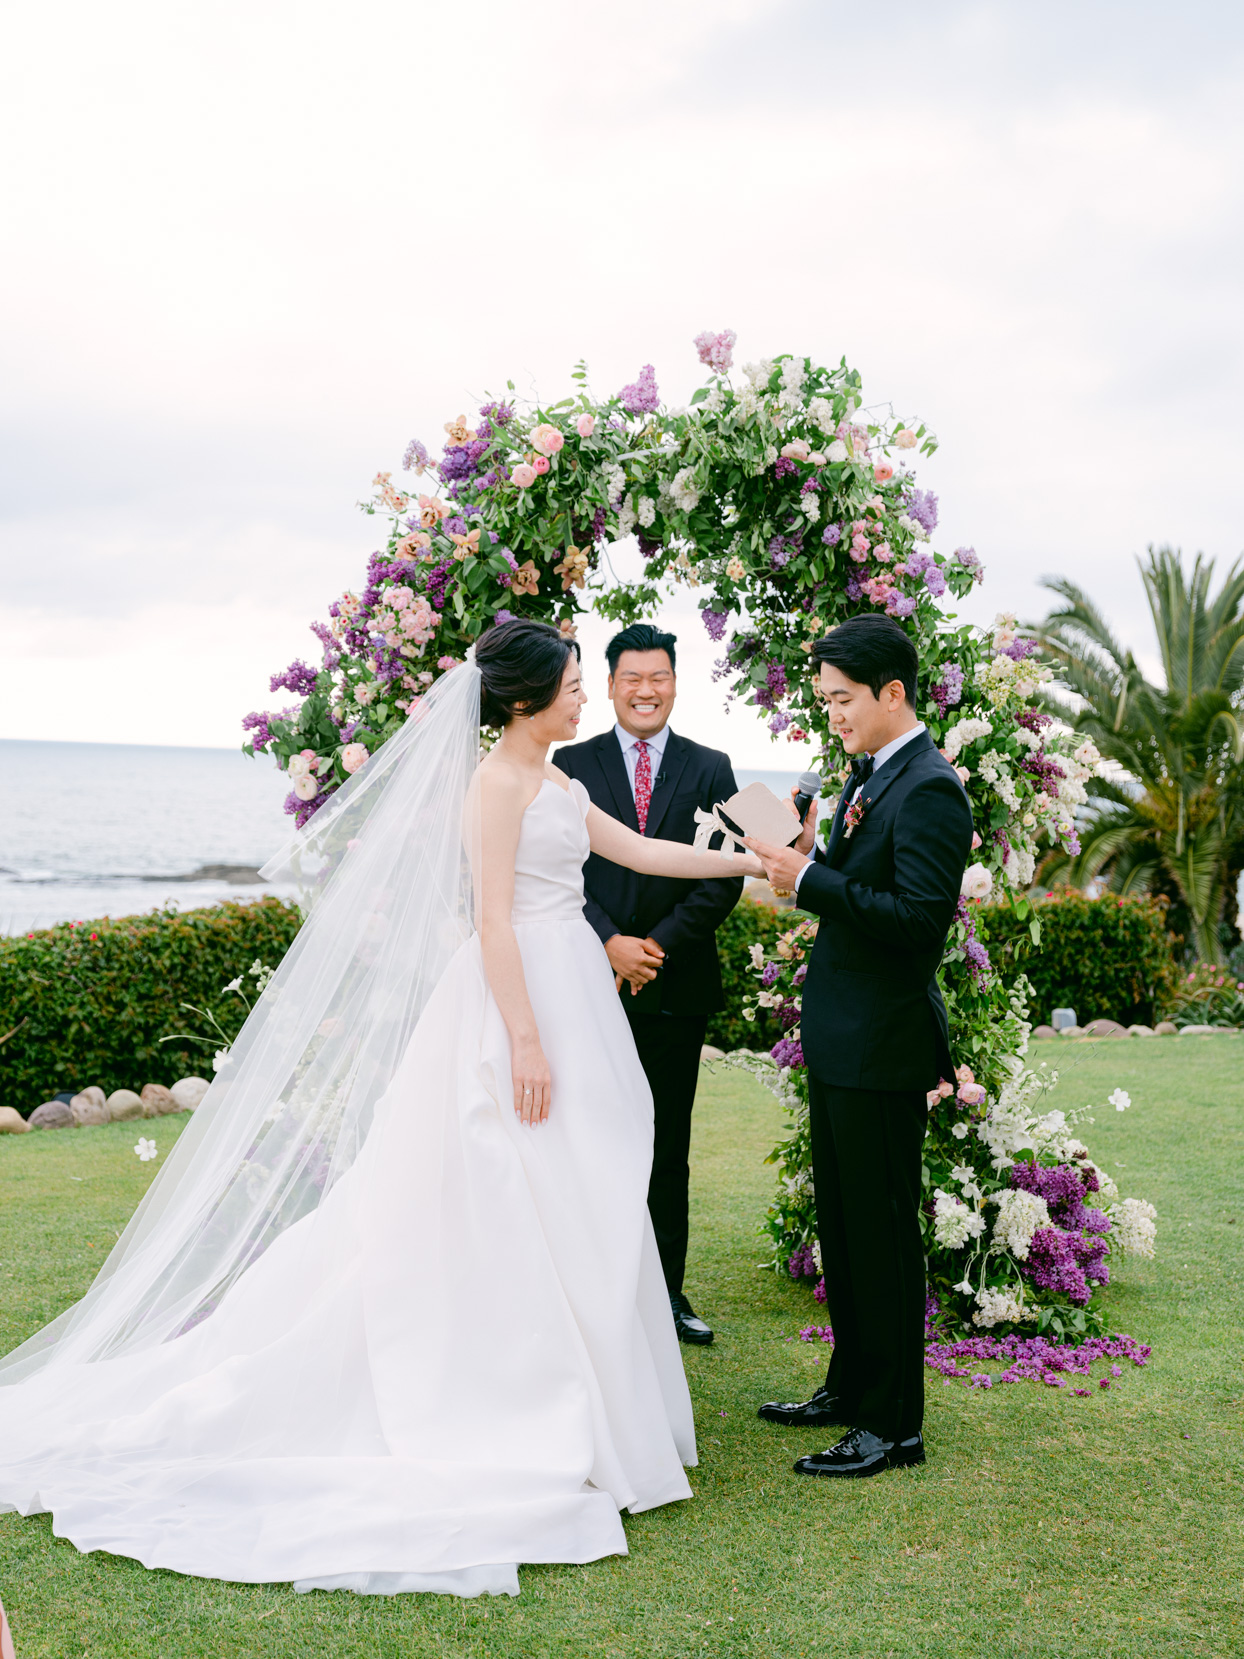 bride smiling while groom reads vows during ceremony